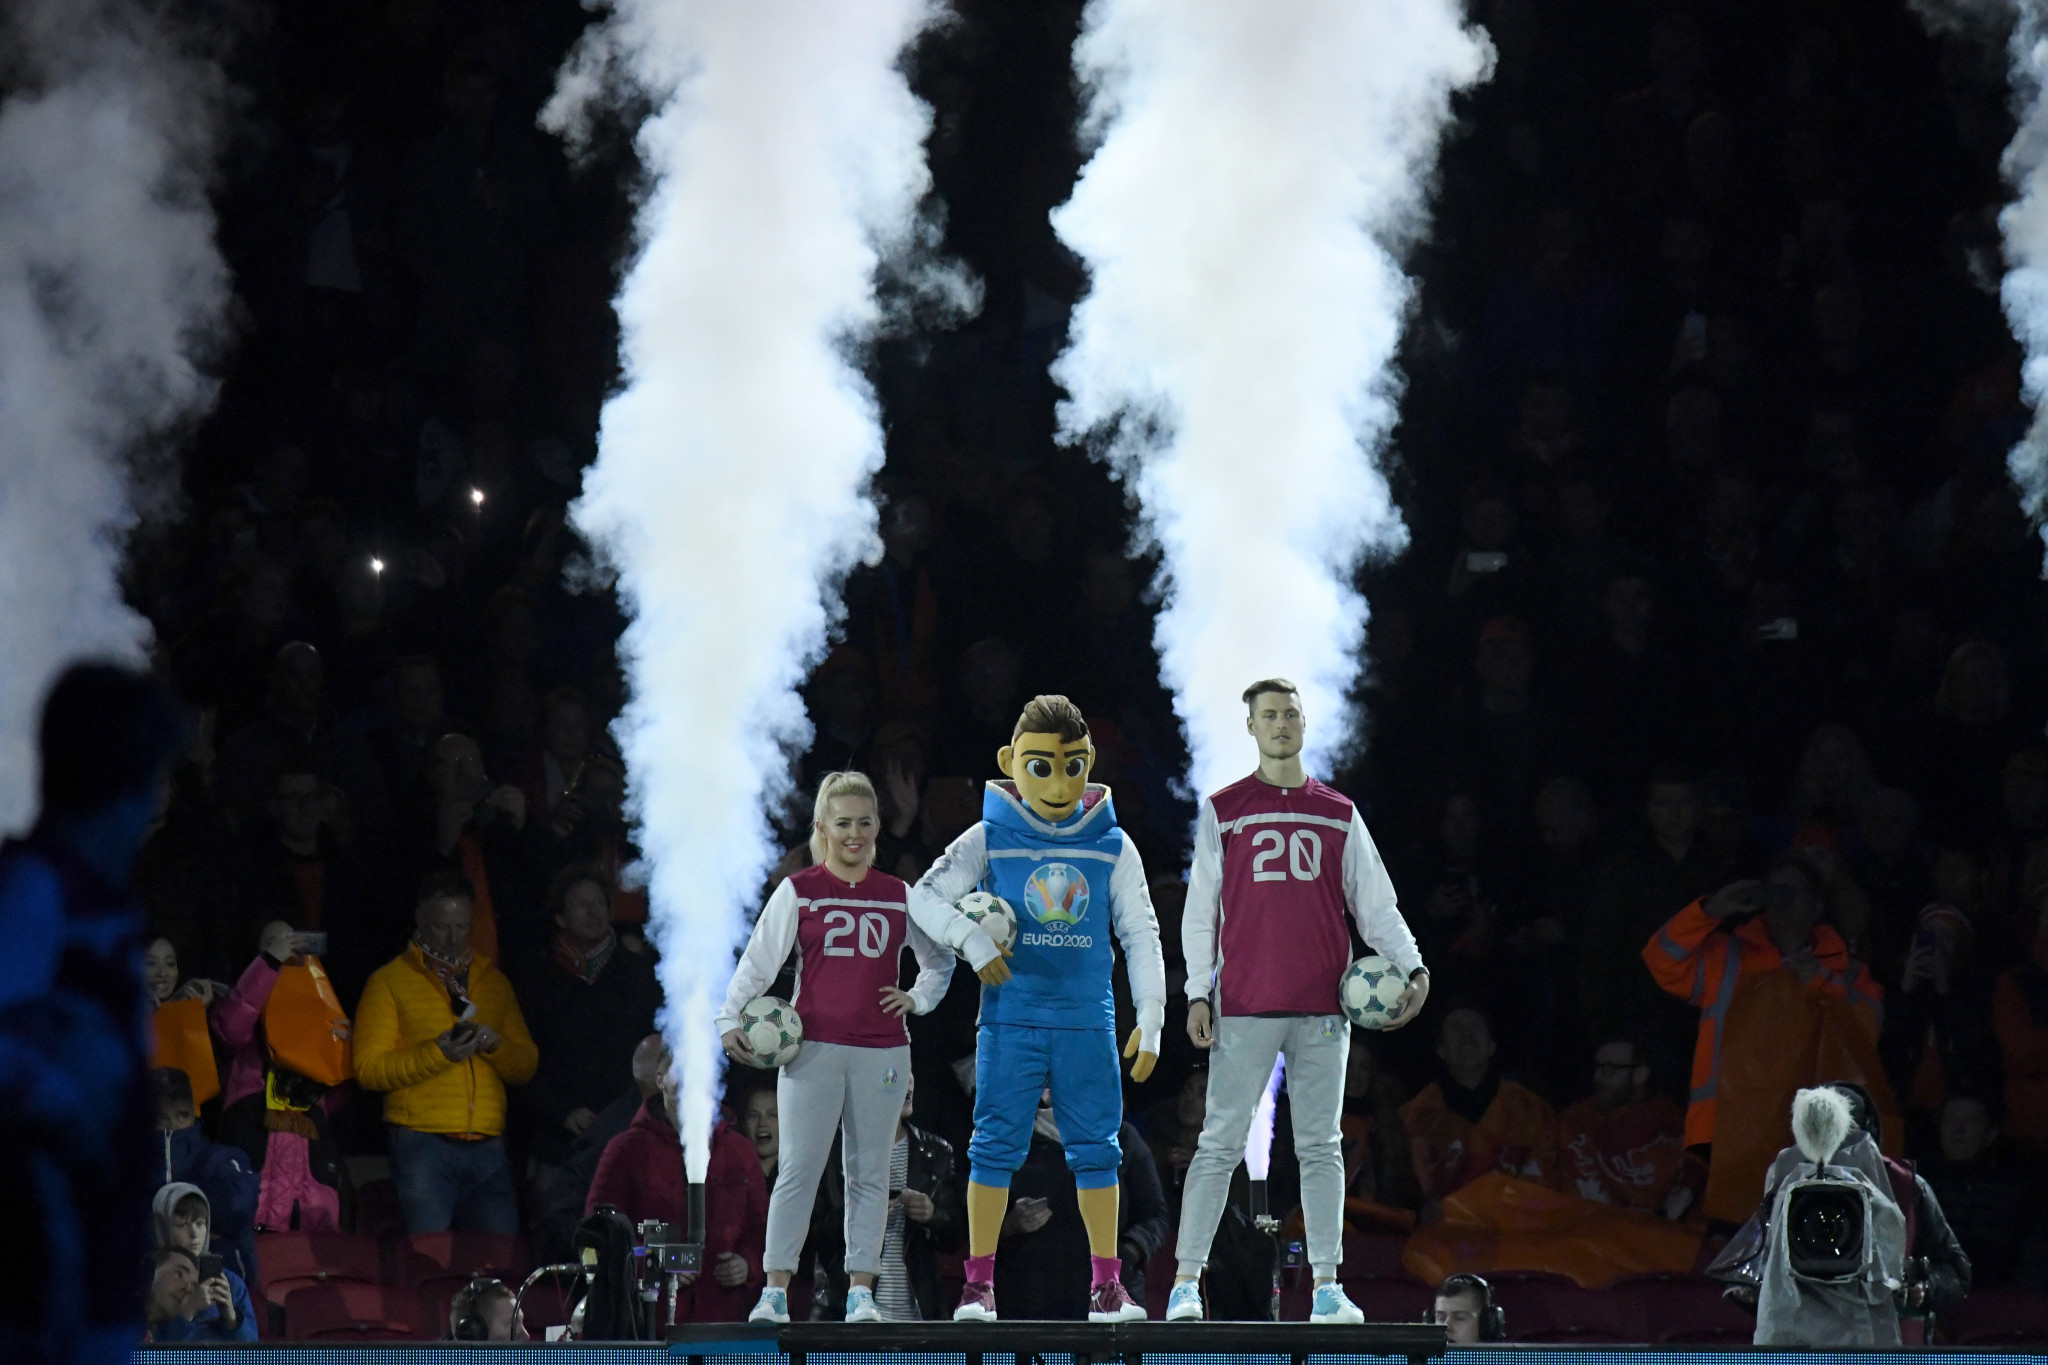 Skillzy was unveiled as the UEFA Euro 2020 mascot prior to the start of a qualifying match between Netherlands and Germany ©UEFA